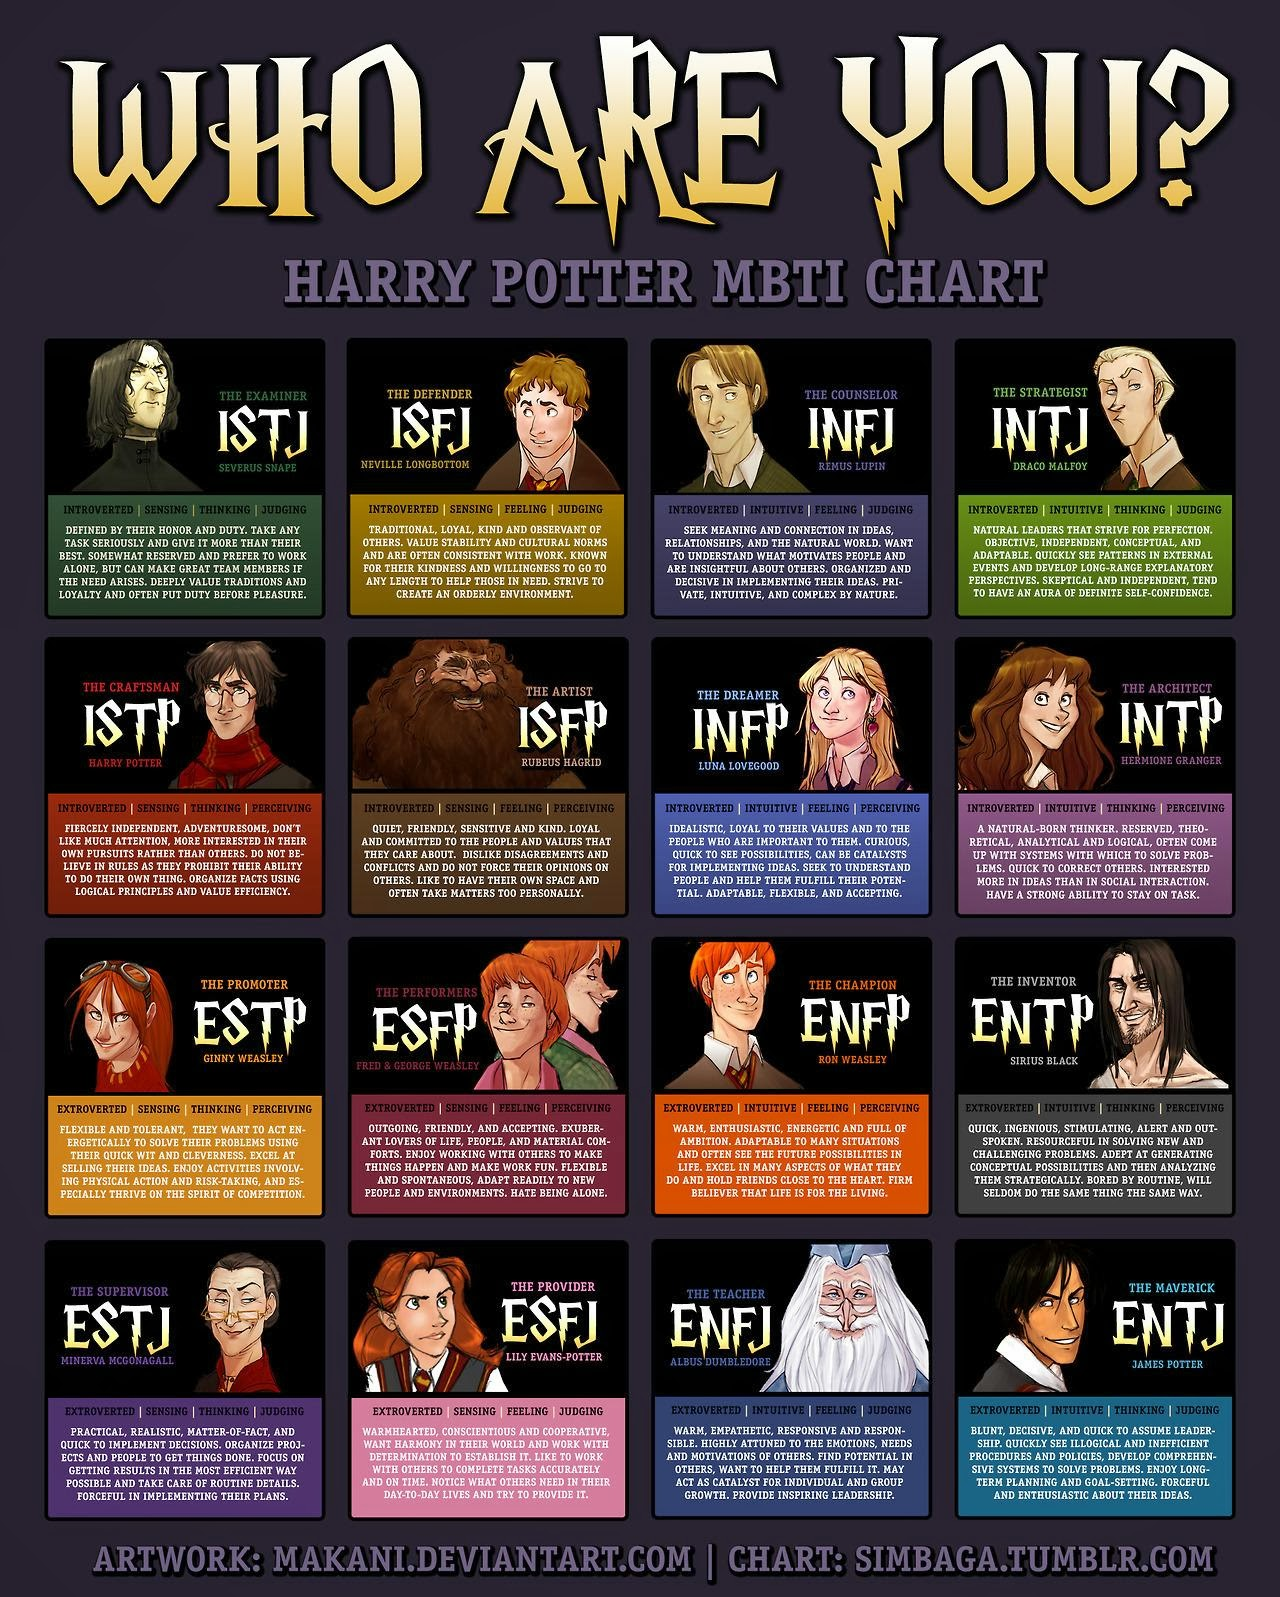 Christina Reads YA: Nerdy Thing I Do with Characters: Sorting by MBTI